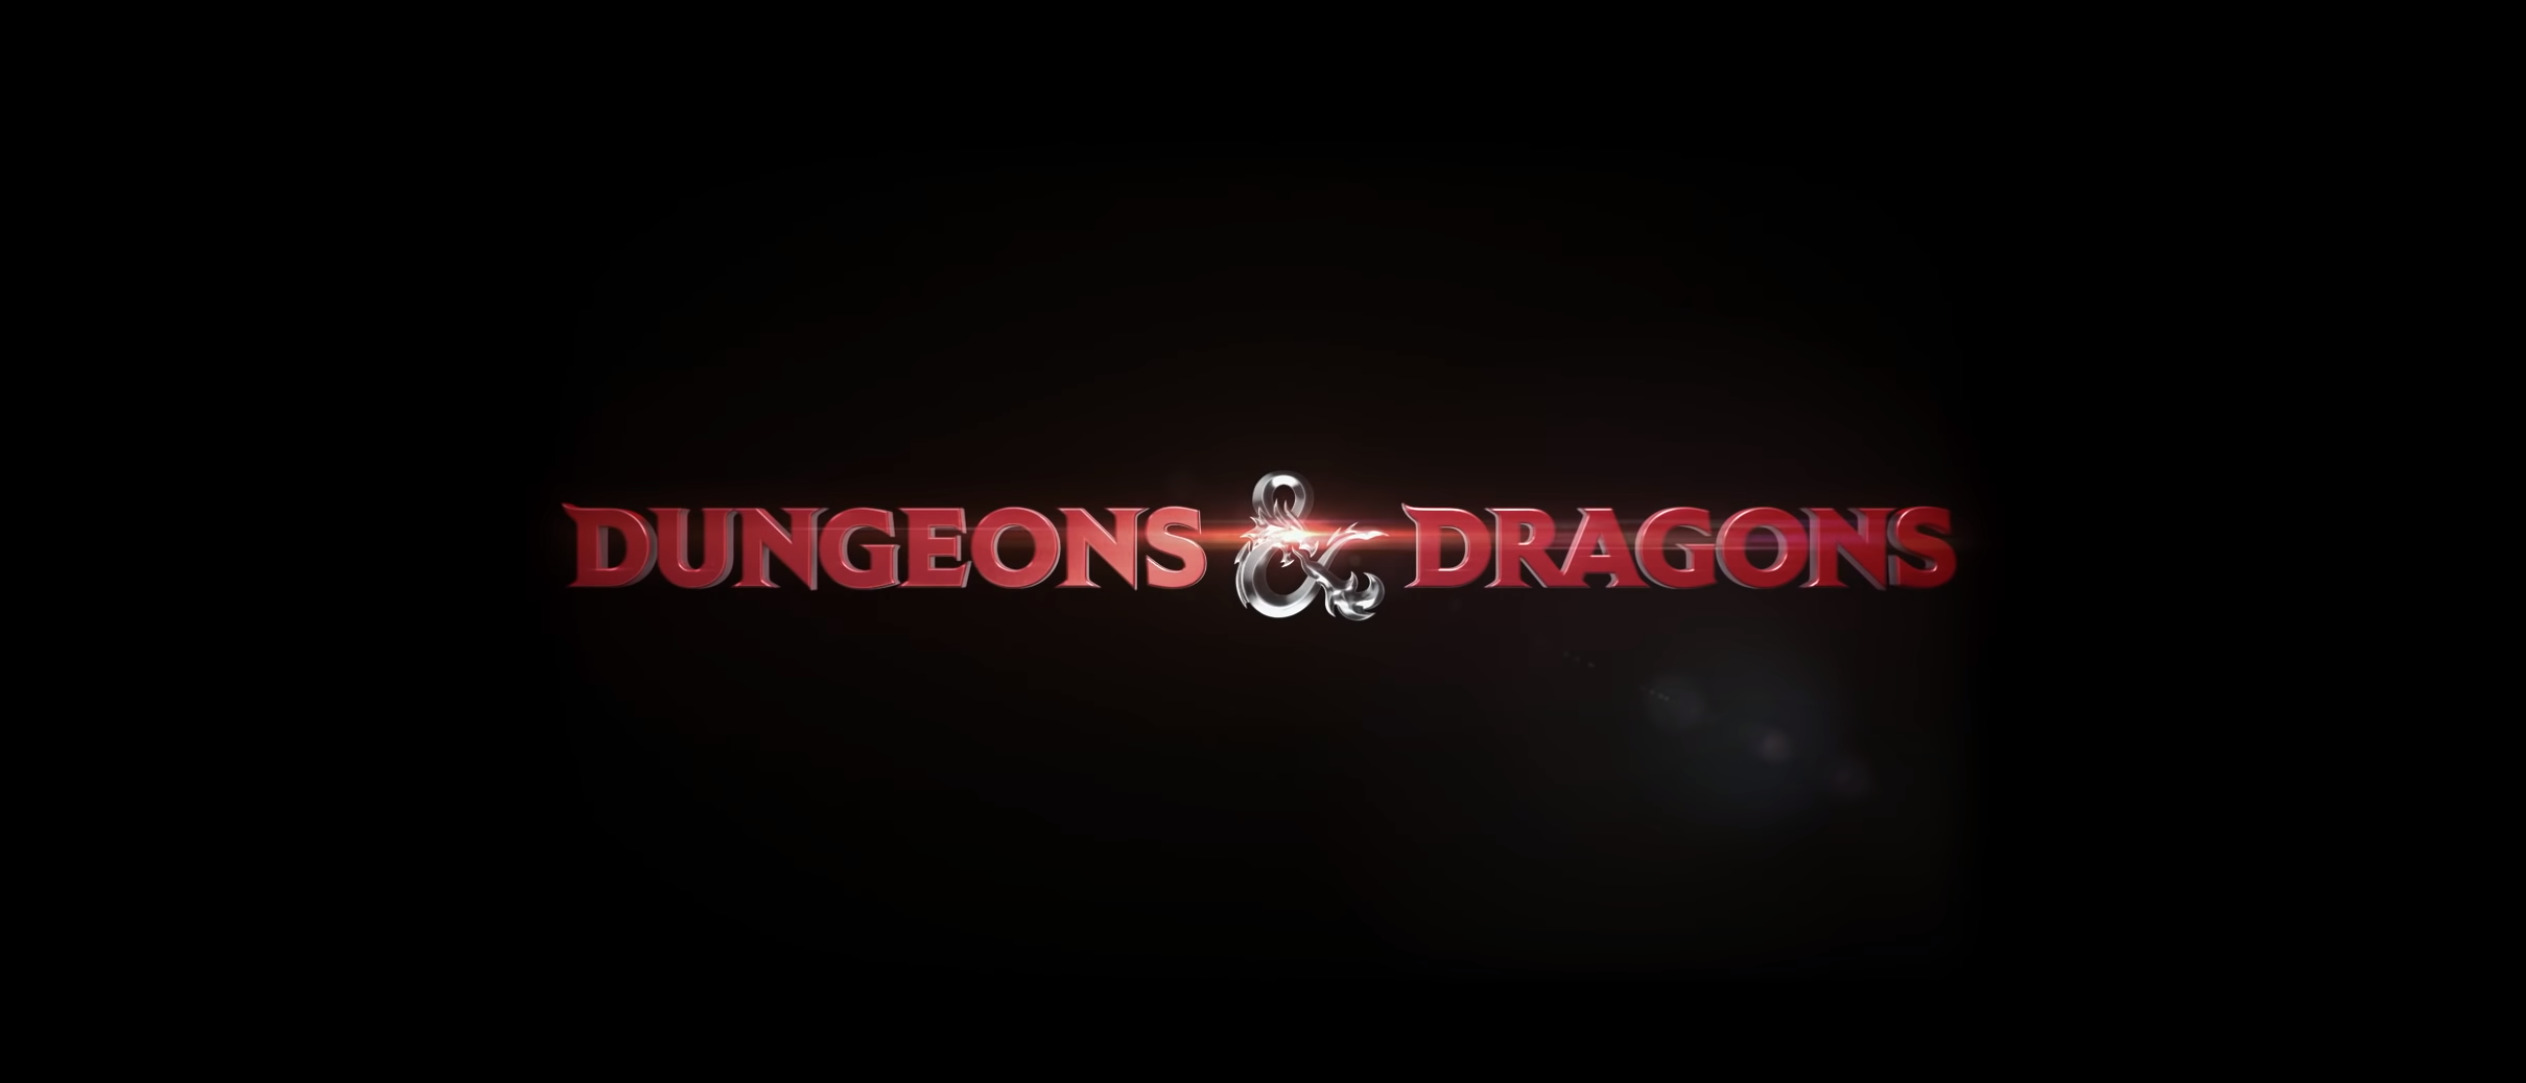 Idle Champions Adds New Champion Utilizing The Dungeons And Dragons Combat Wheelchair